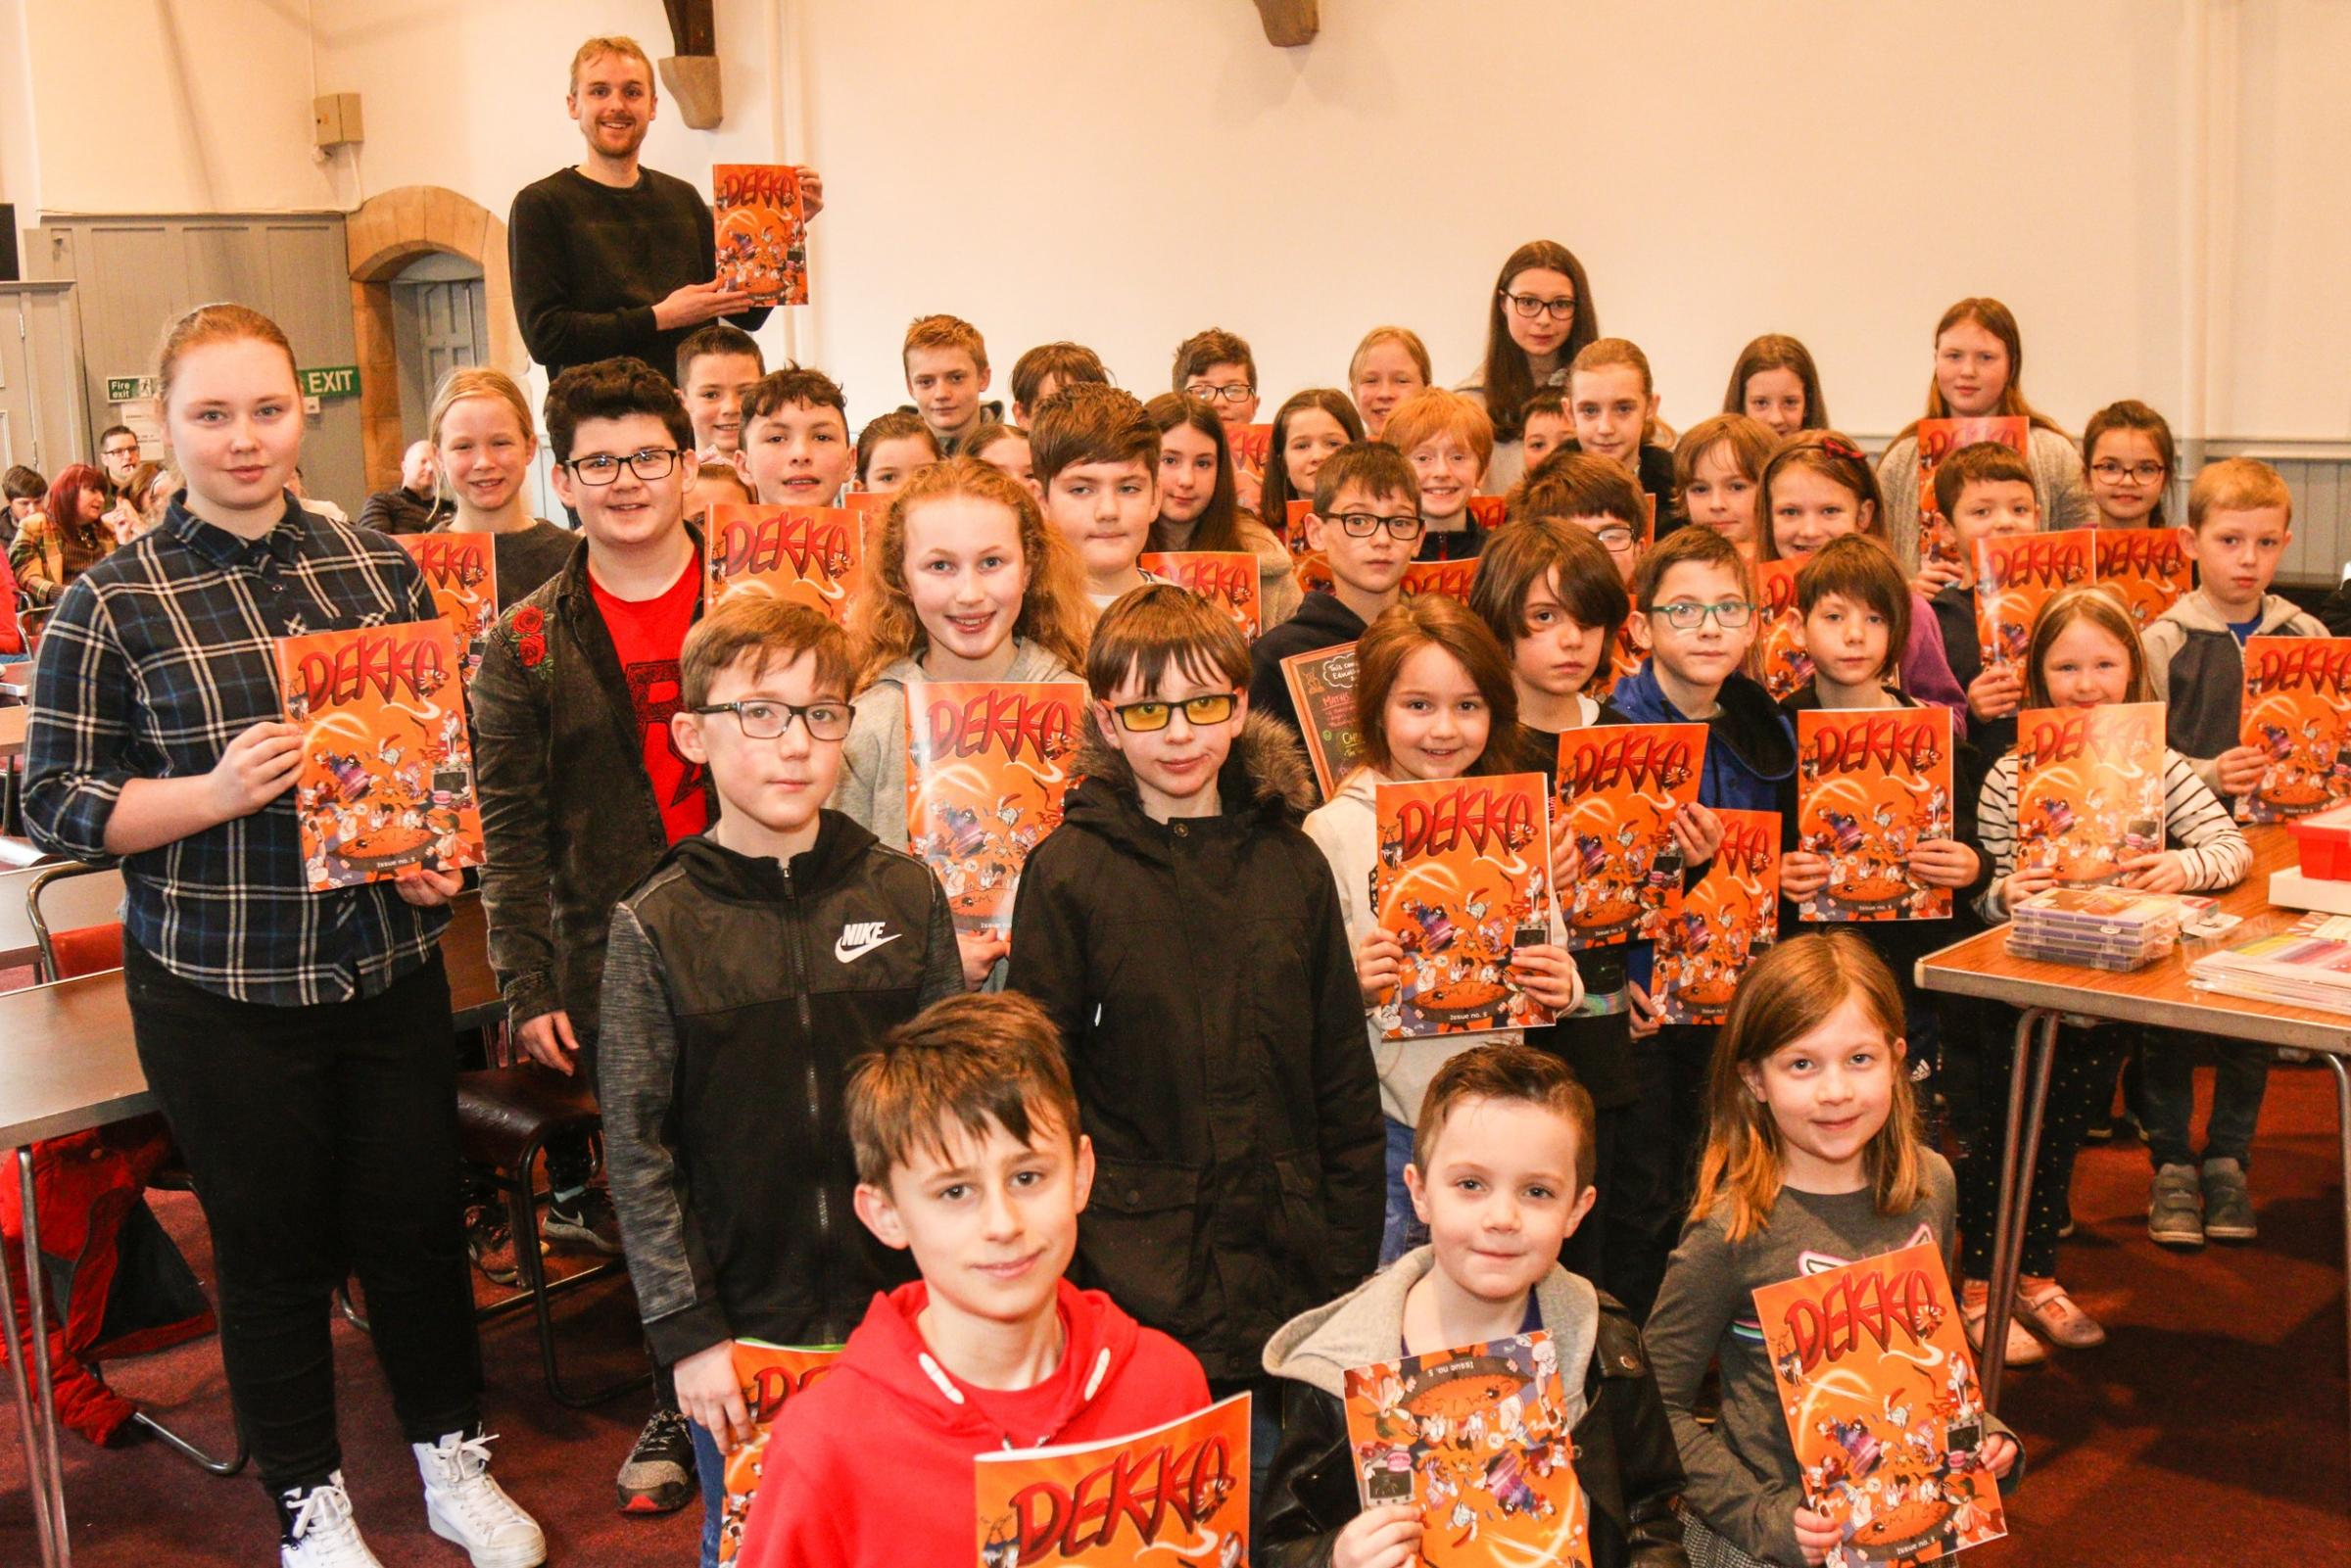 Dekko Workshop in Barrhead (photo from Barrhead News)